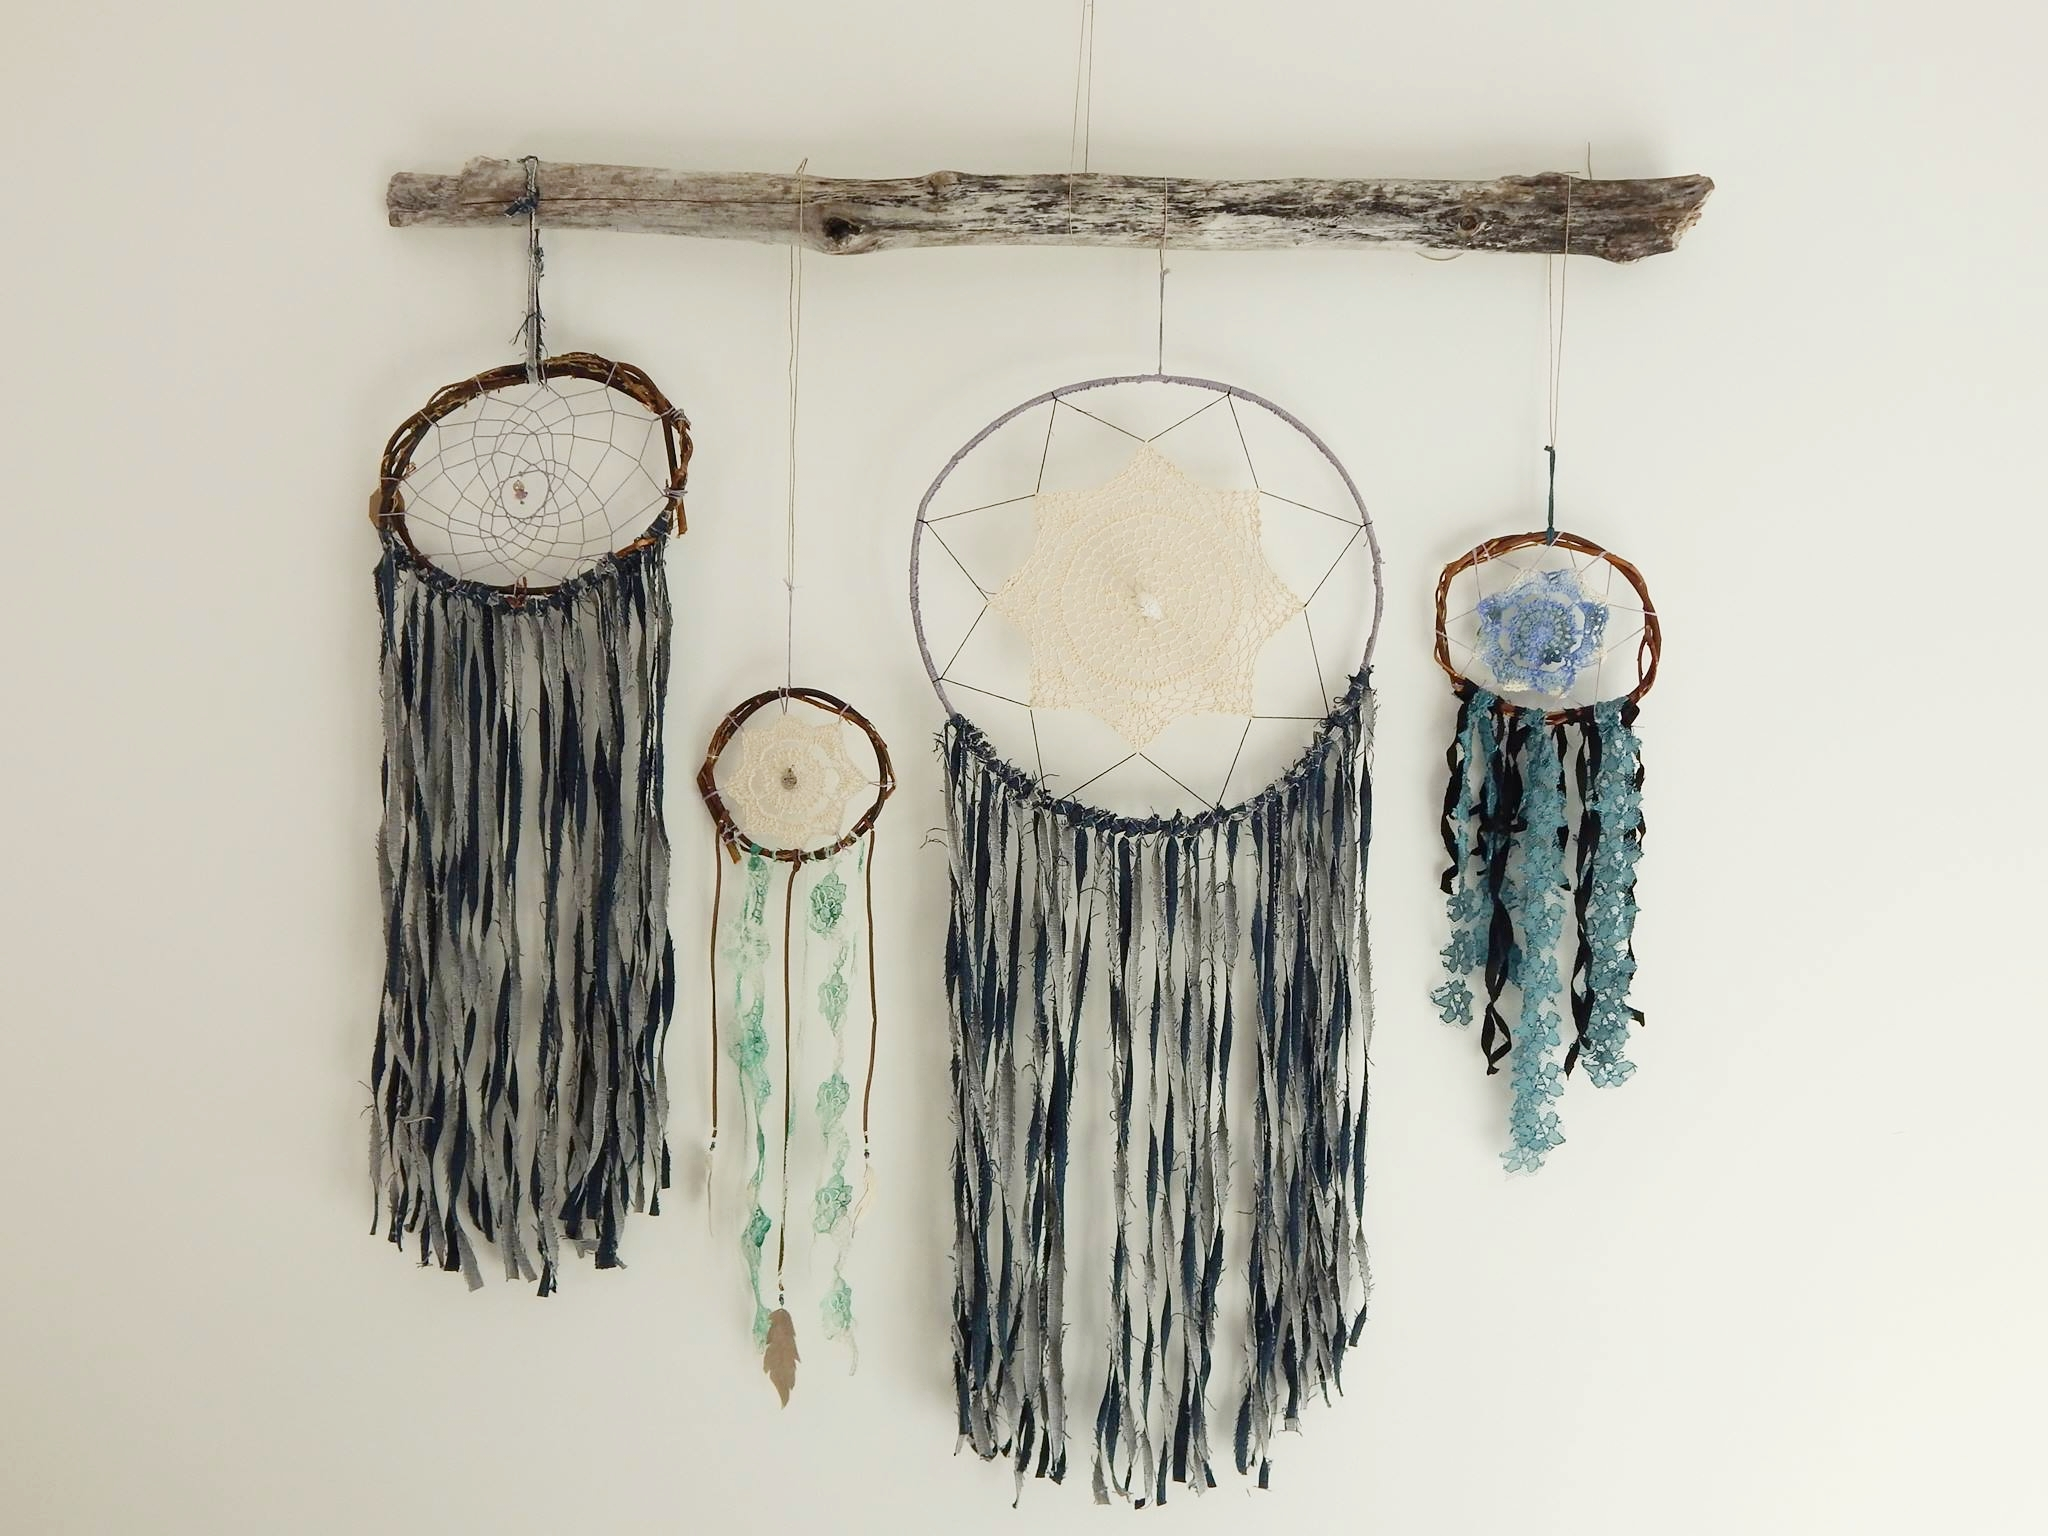 Dream catchers made by myself with upcycled materials